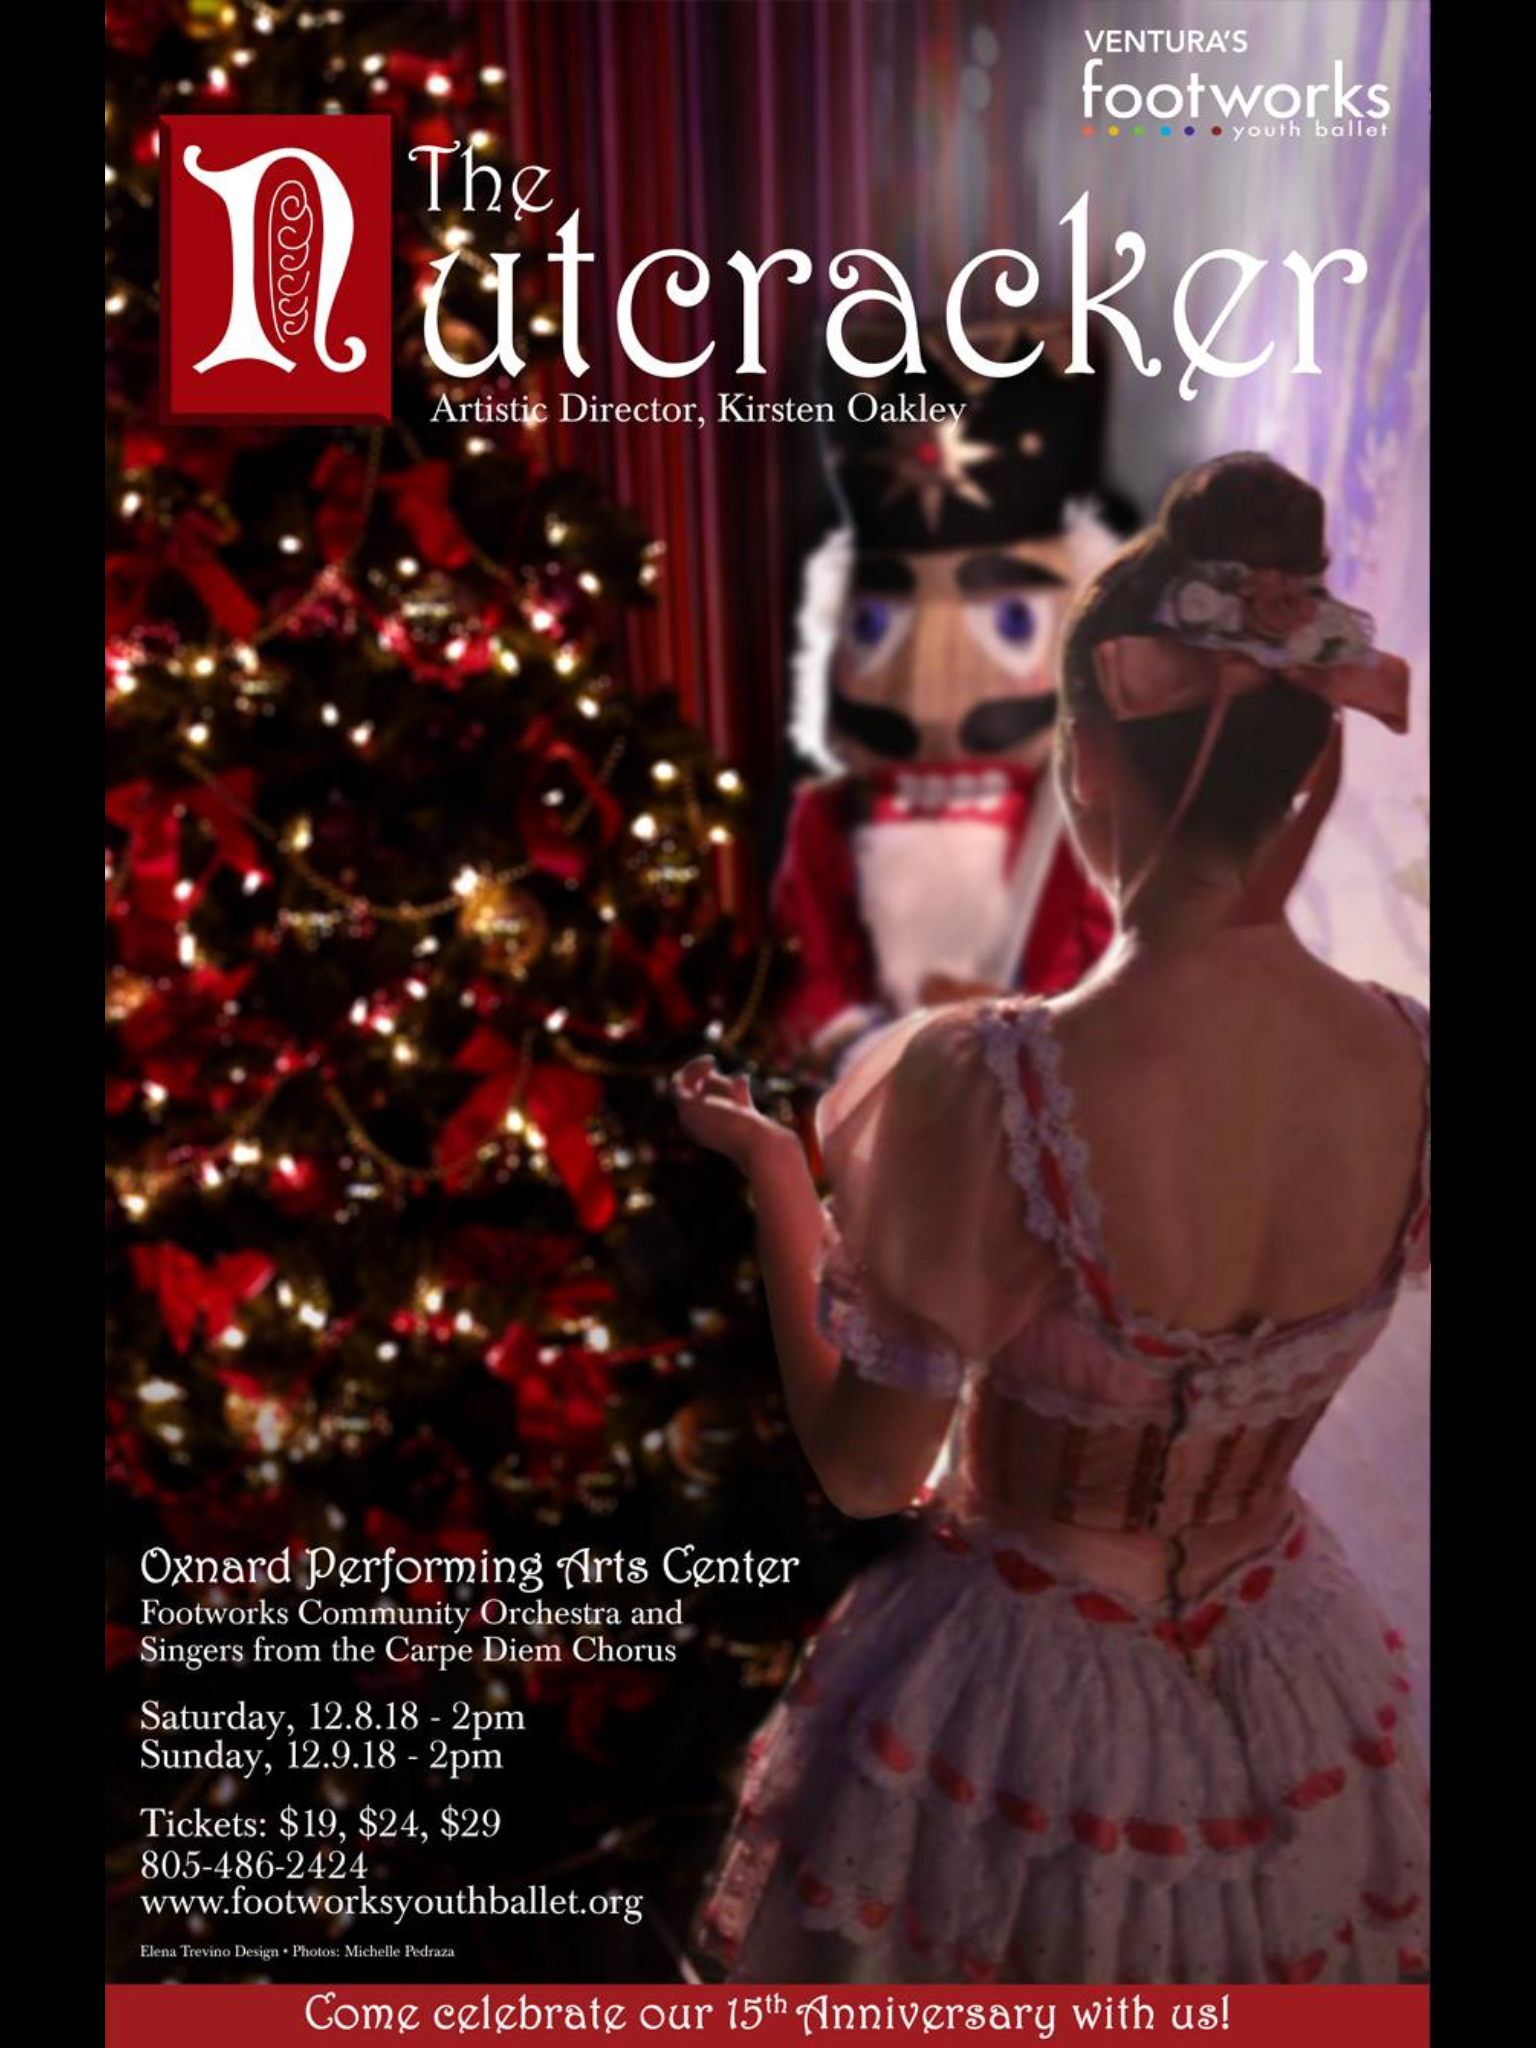 Footworks Youth Ballet present The Nutcracker